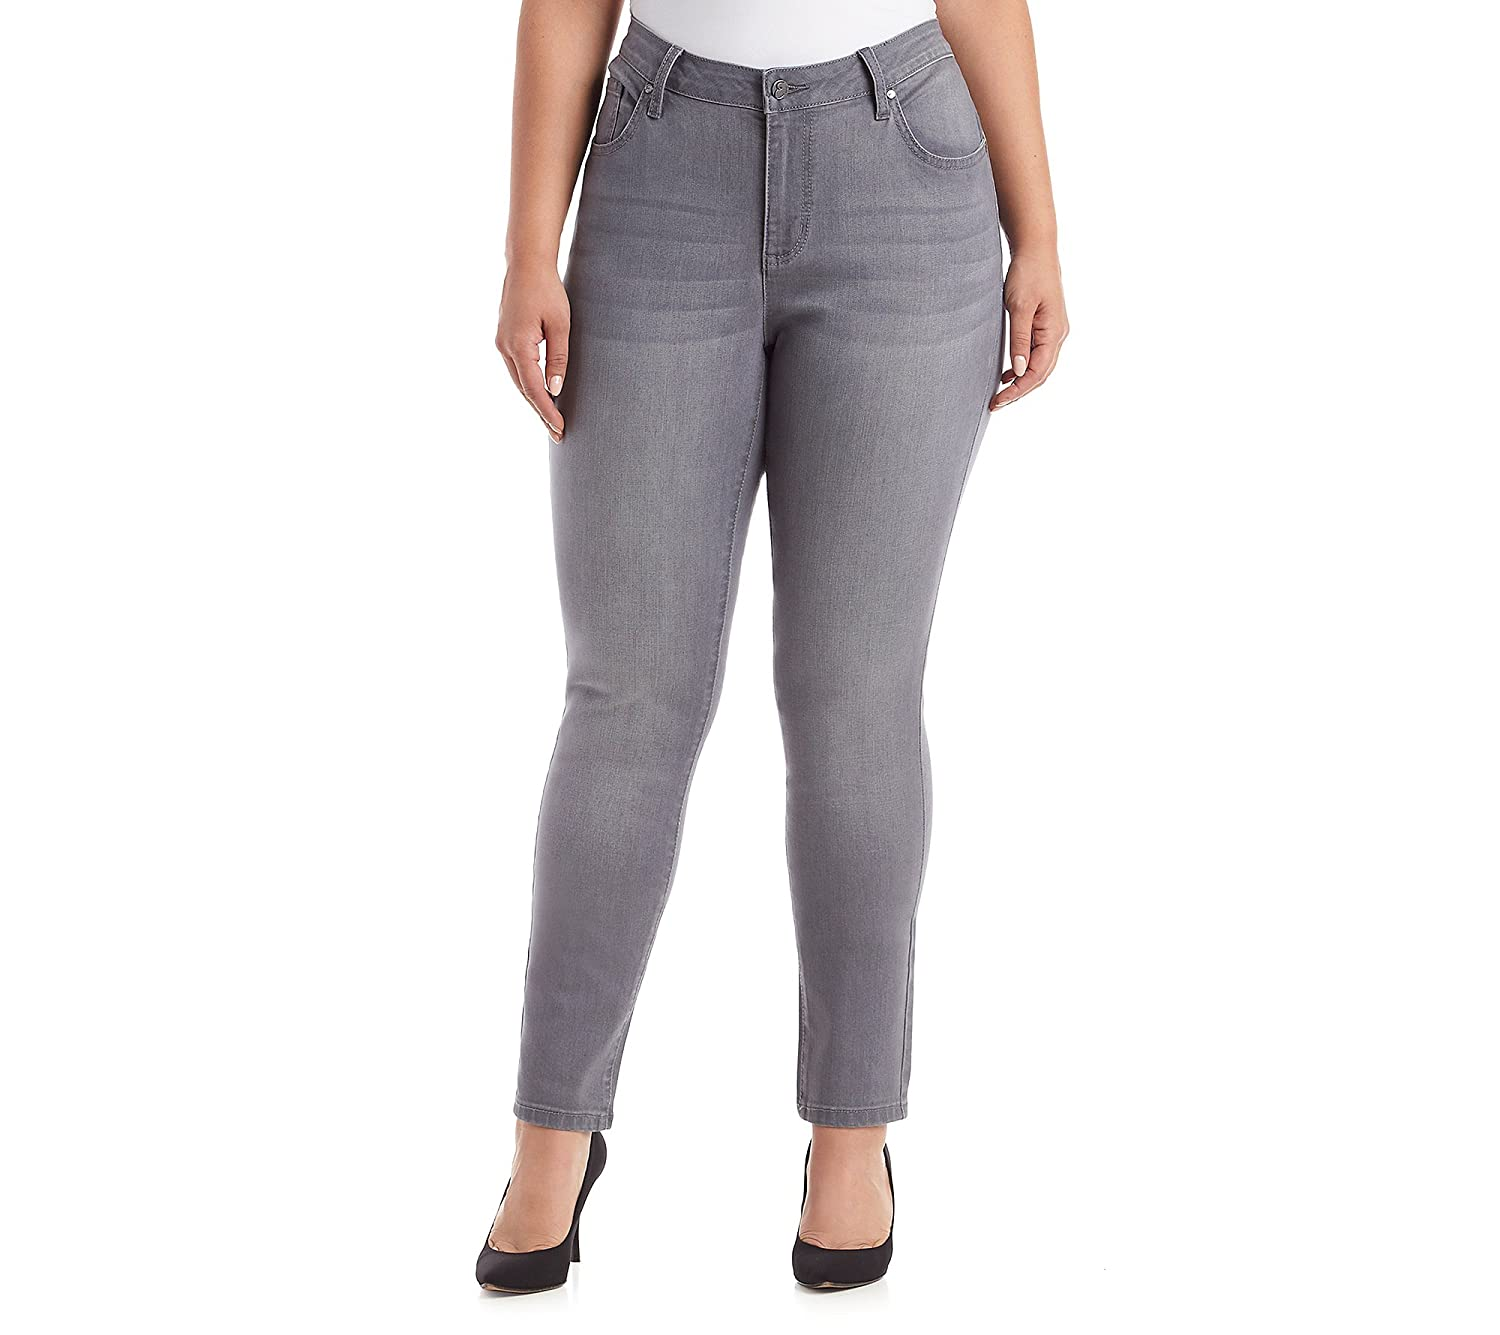 Earl Jean Plus Size Skinny Stretch Denim Jeans